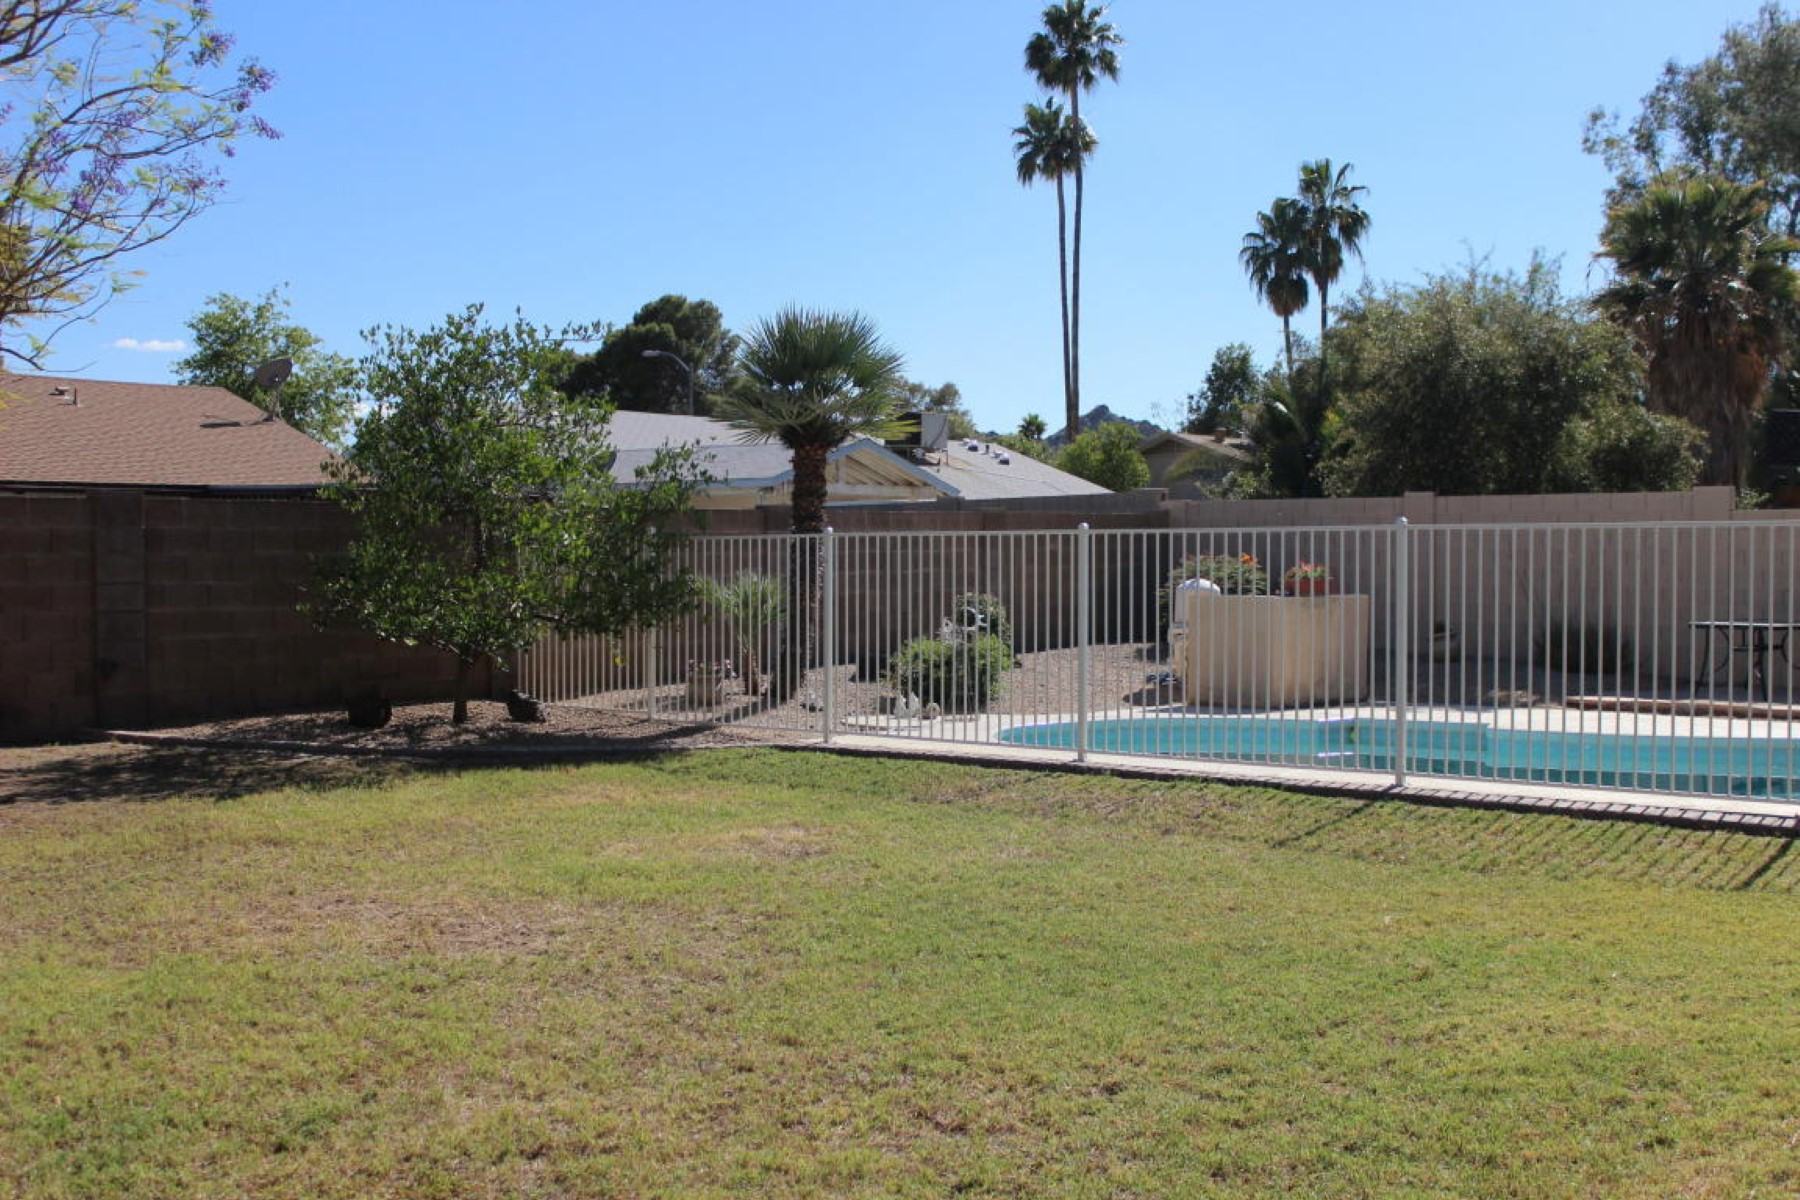 Single Family Home for Sale at Charming, updated home near the Phoenix Mountain Preserve. 2647 E CHOLLA ST Phoenix, Arizona 85028 United States